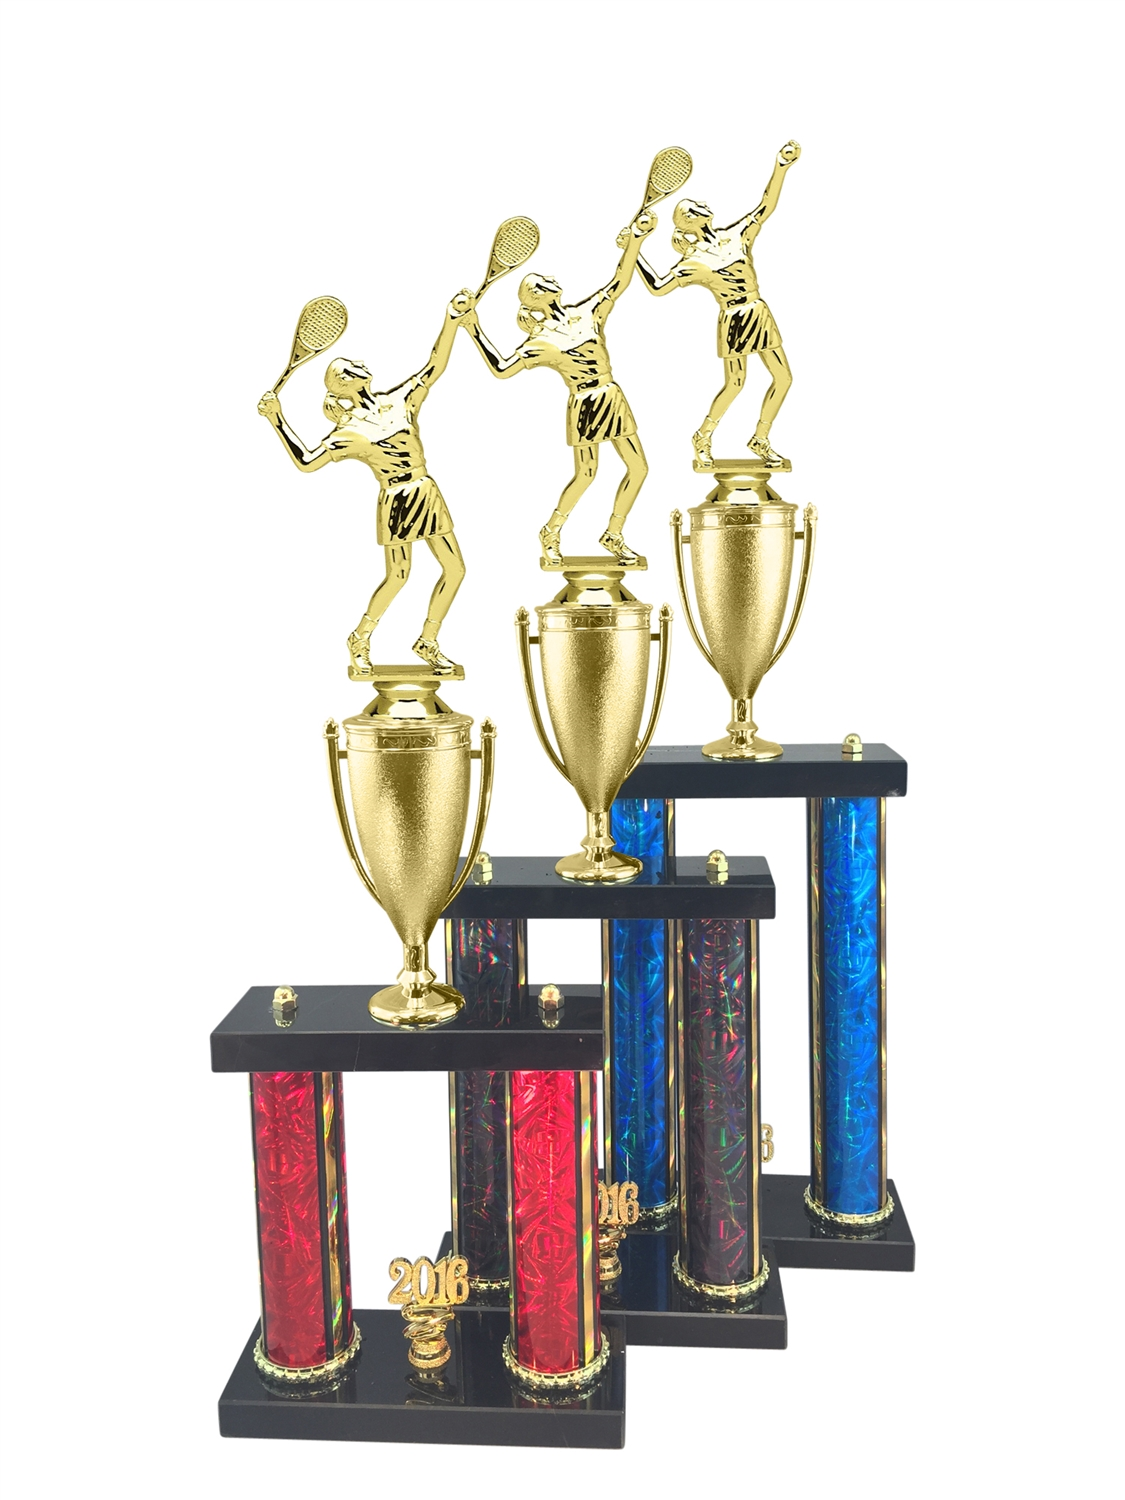 Female Tennis Trophy Available in 11 Color & 3 Size Options